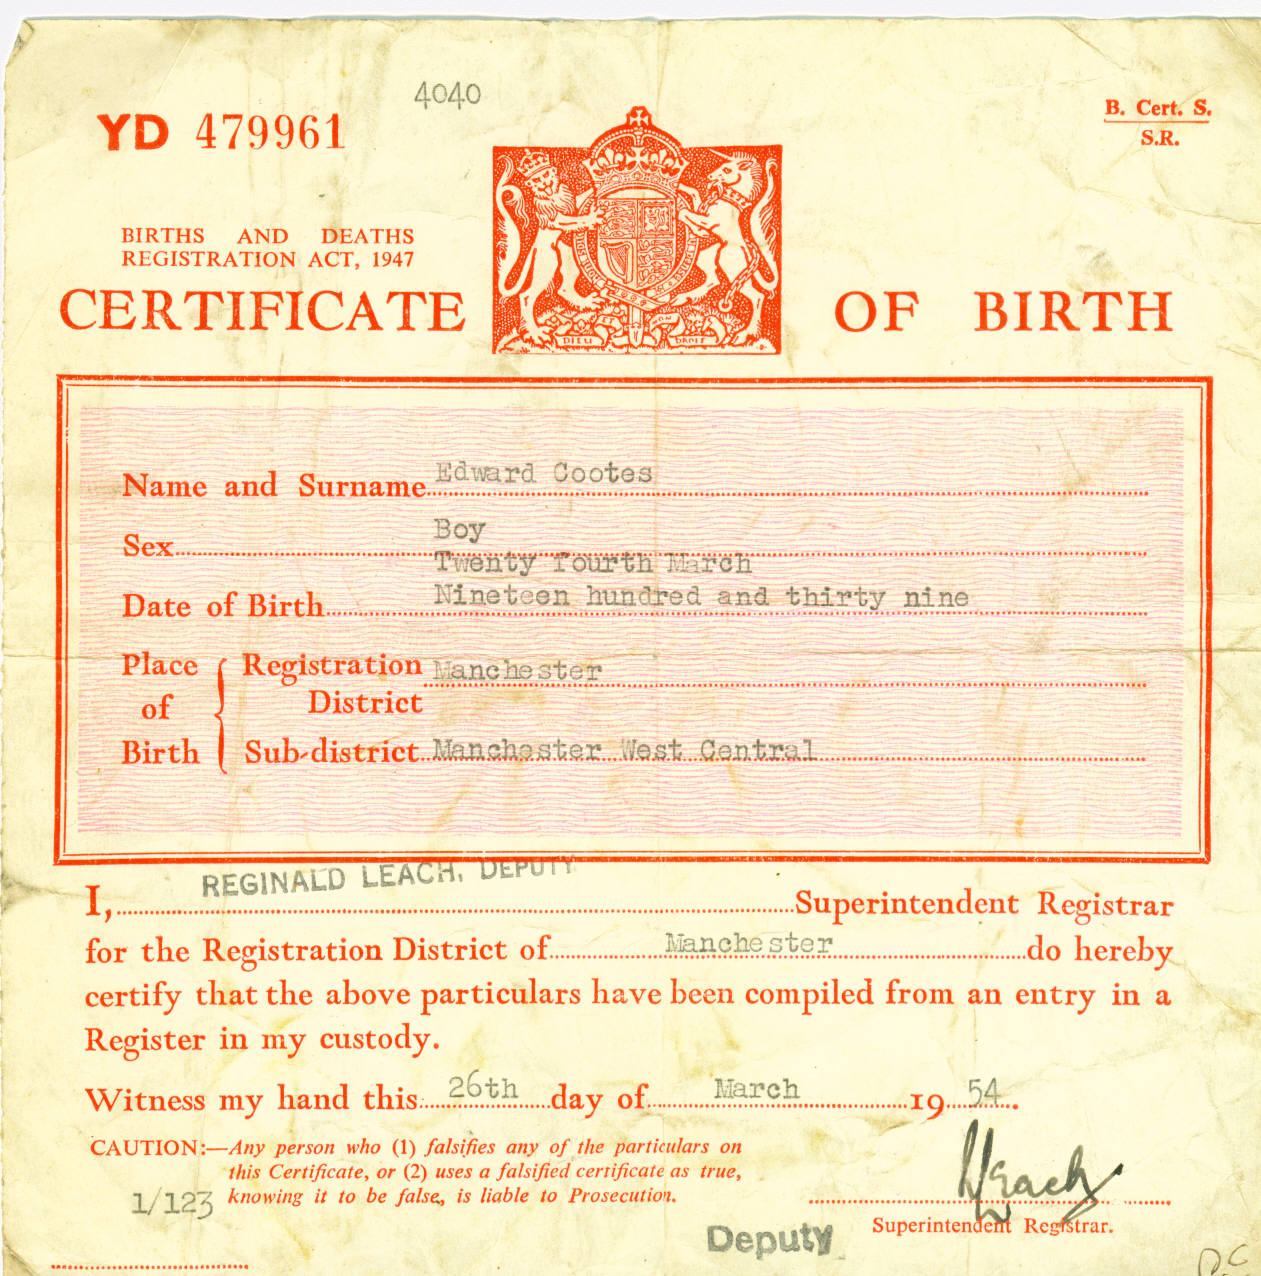 Birth Certificates Gro. Early Beginnings Learning Center. How To Check Your Business Credit Score For Free. Patriot Heating And Air Storage Boca Raton Fl. Window Replacement Stockton Ca. Best Ways To Sell Your Car Mr Safety Training. Spring River Mental Health Gnma Funds Outlook. Small Bussiness Server Dfw Garage Door Repair. Film School Portland Oregon What Is Auto Cad